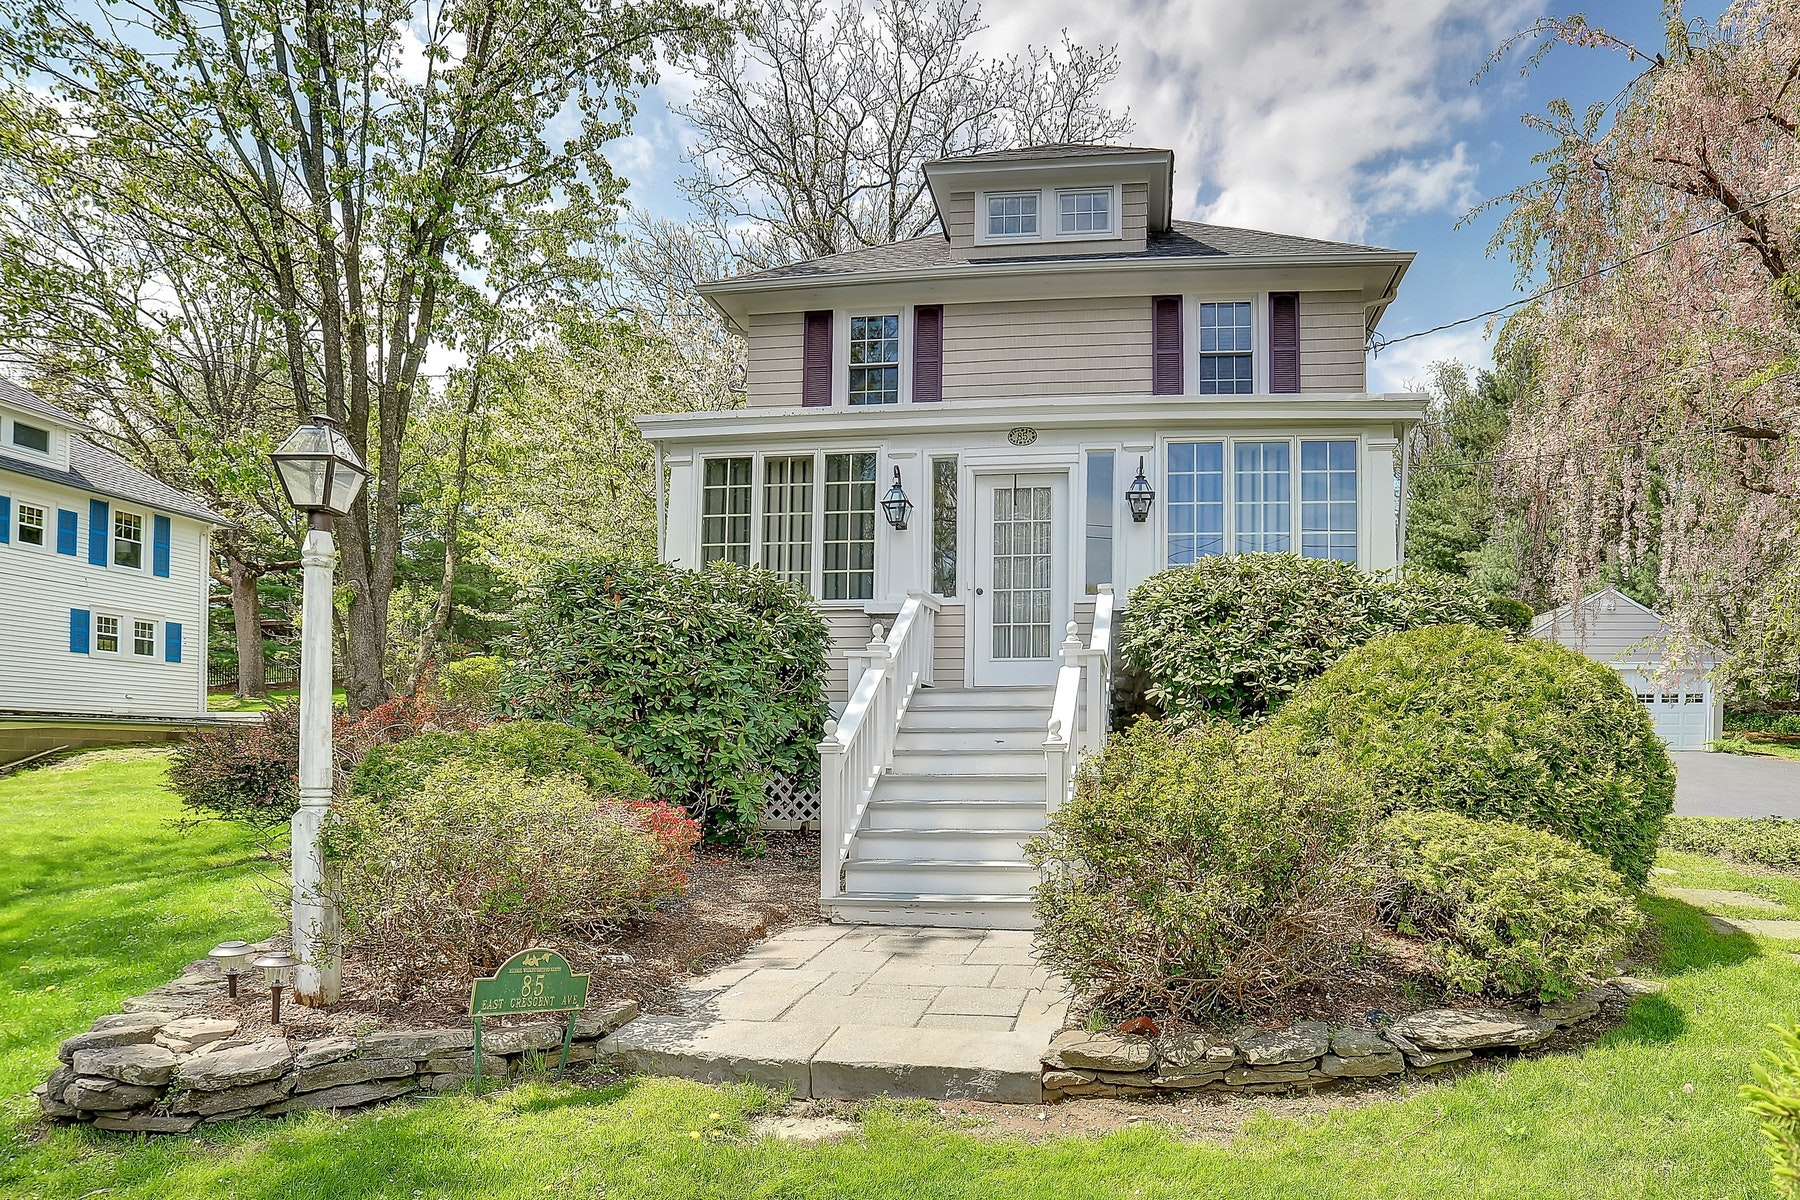 Single Family Homes for Sale at Welcome To This Move In Four Bedroom Colonial. 85 East Crescent Avenue Ramsey, New Jersey 07446 United States